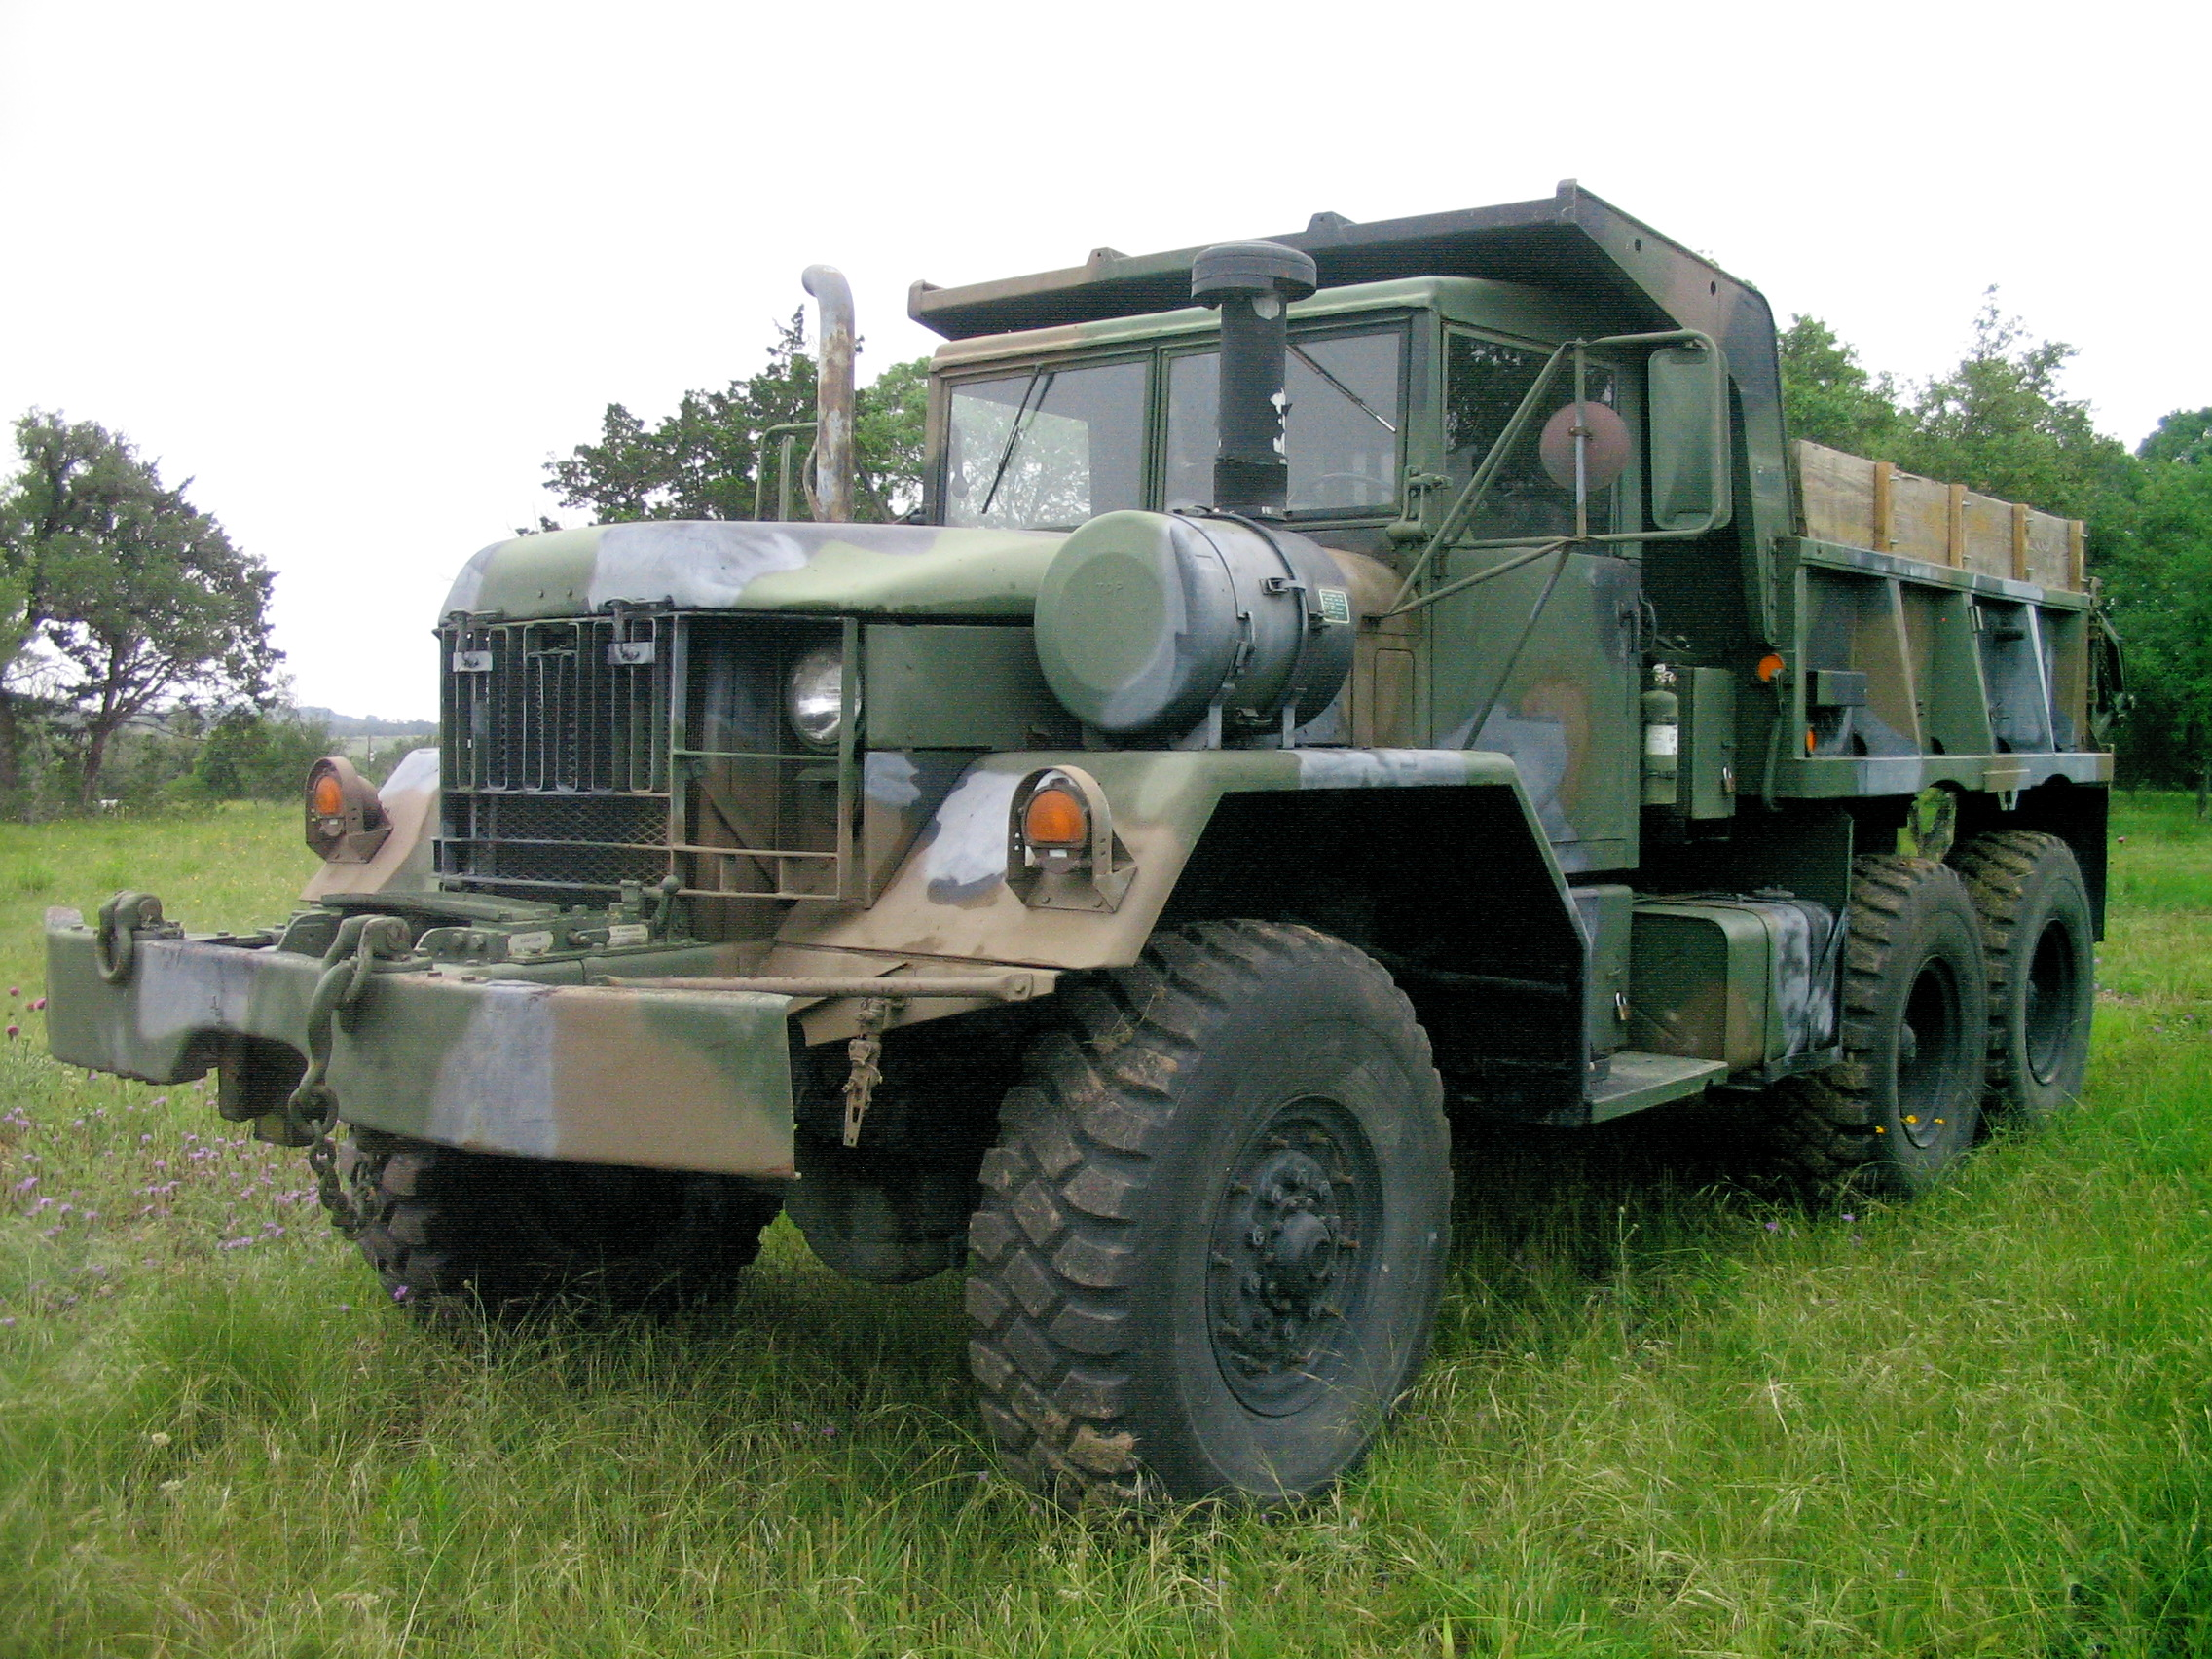 Texas Military Trucks - Military Vehicles for Sale - Military Trucks ...